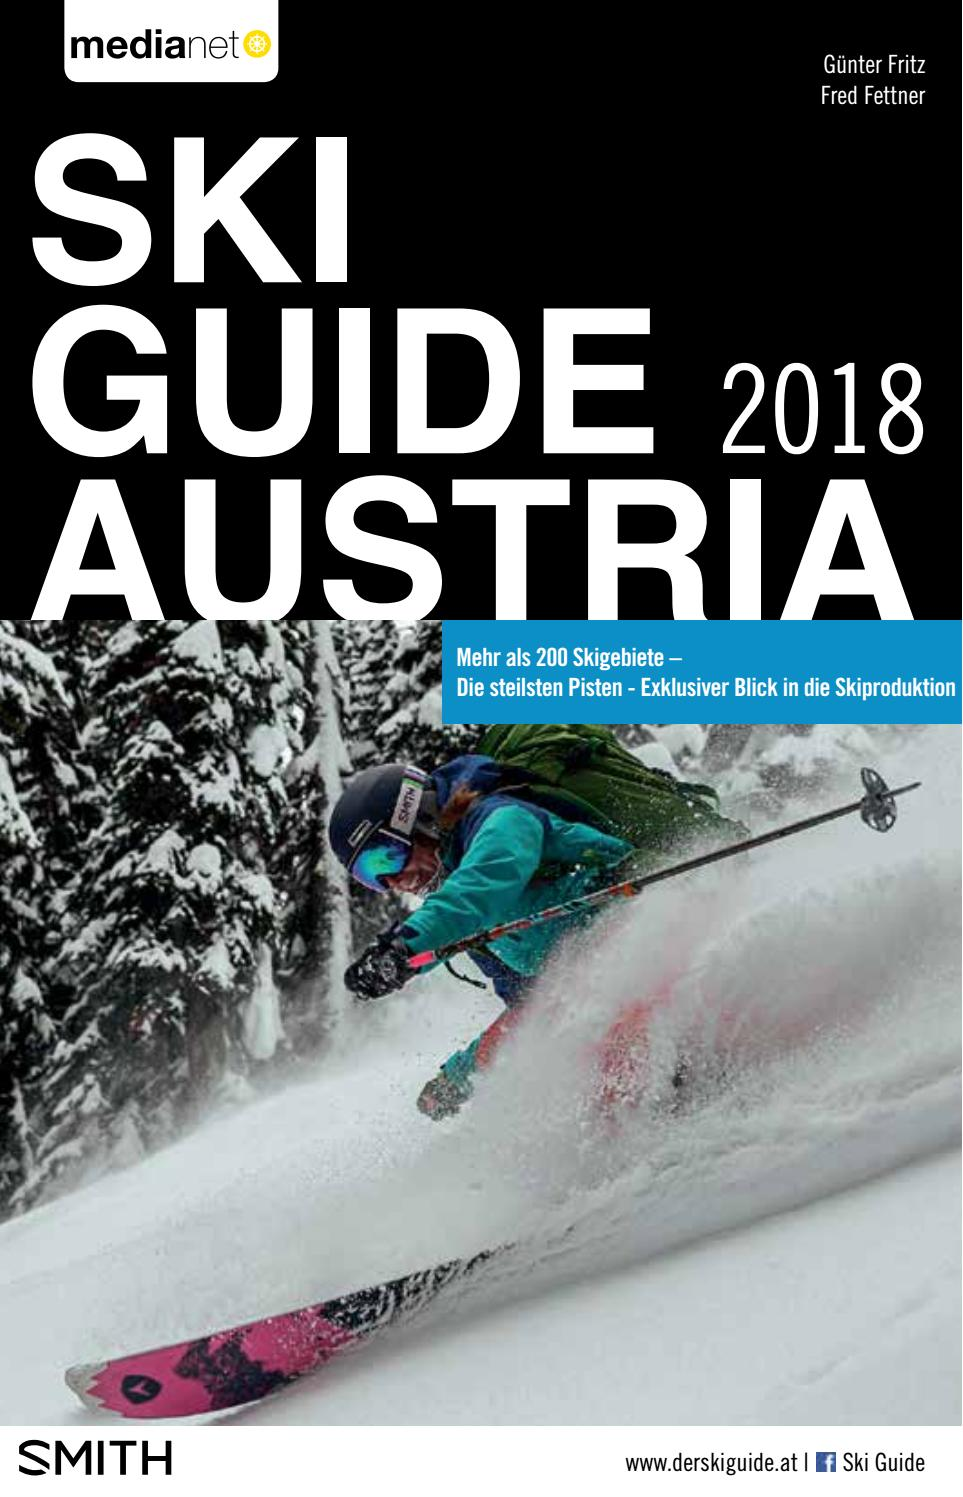 Ski Guide Austria 2018 By Medianet Issuu